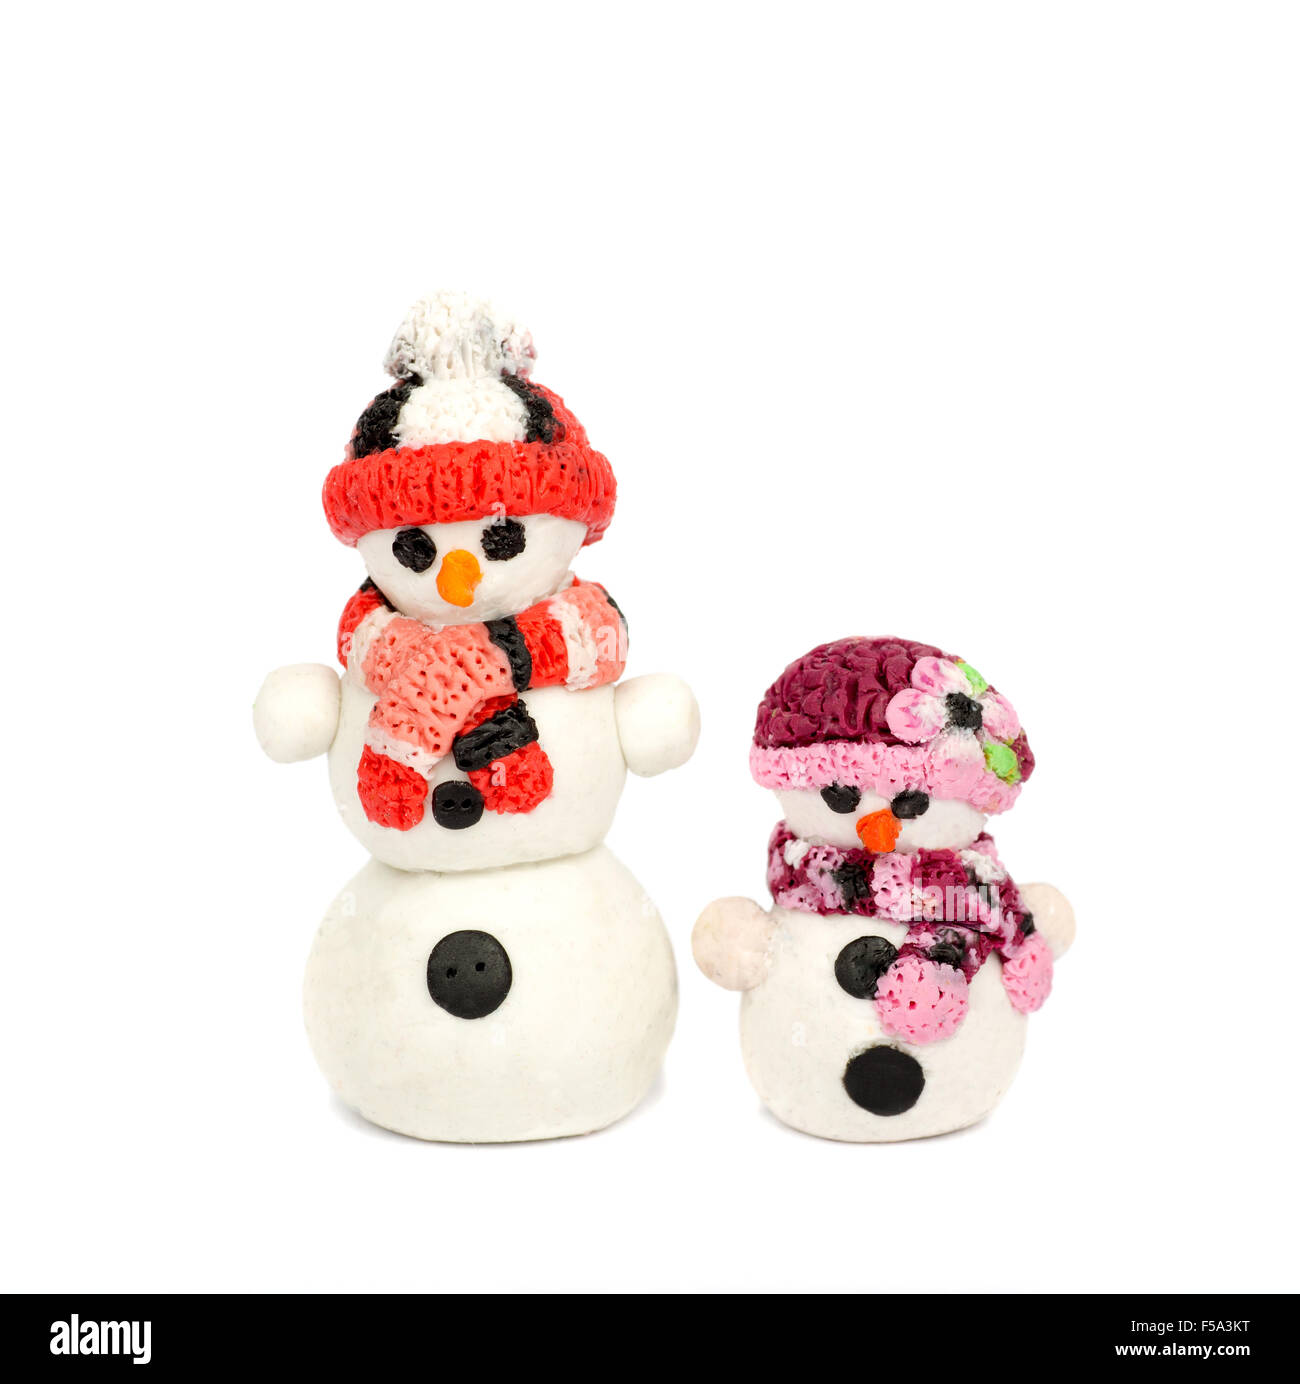 Hand Made Plasticine Or Modeling Clay Figure Of Snowman On White Background Christmas Decoration